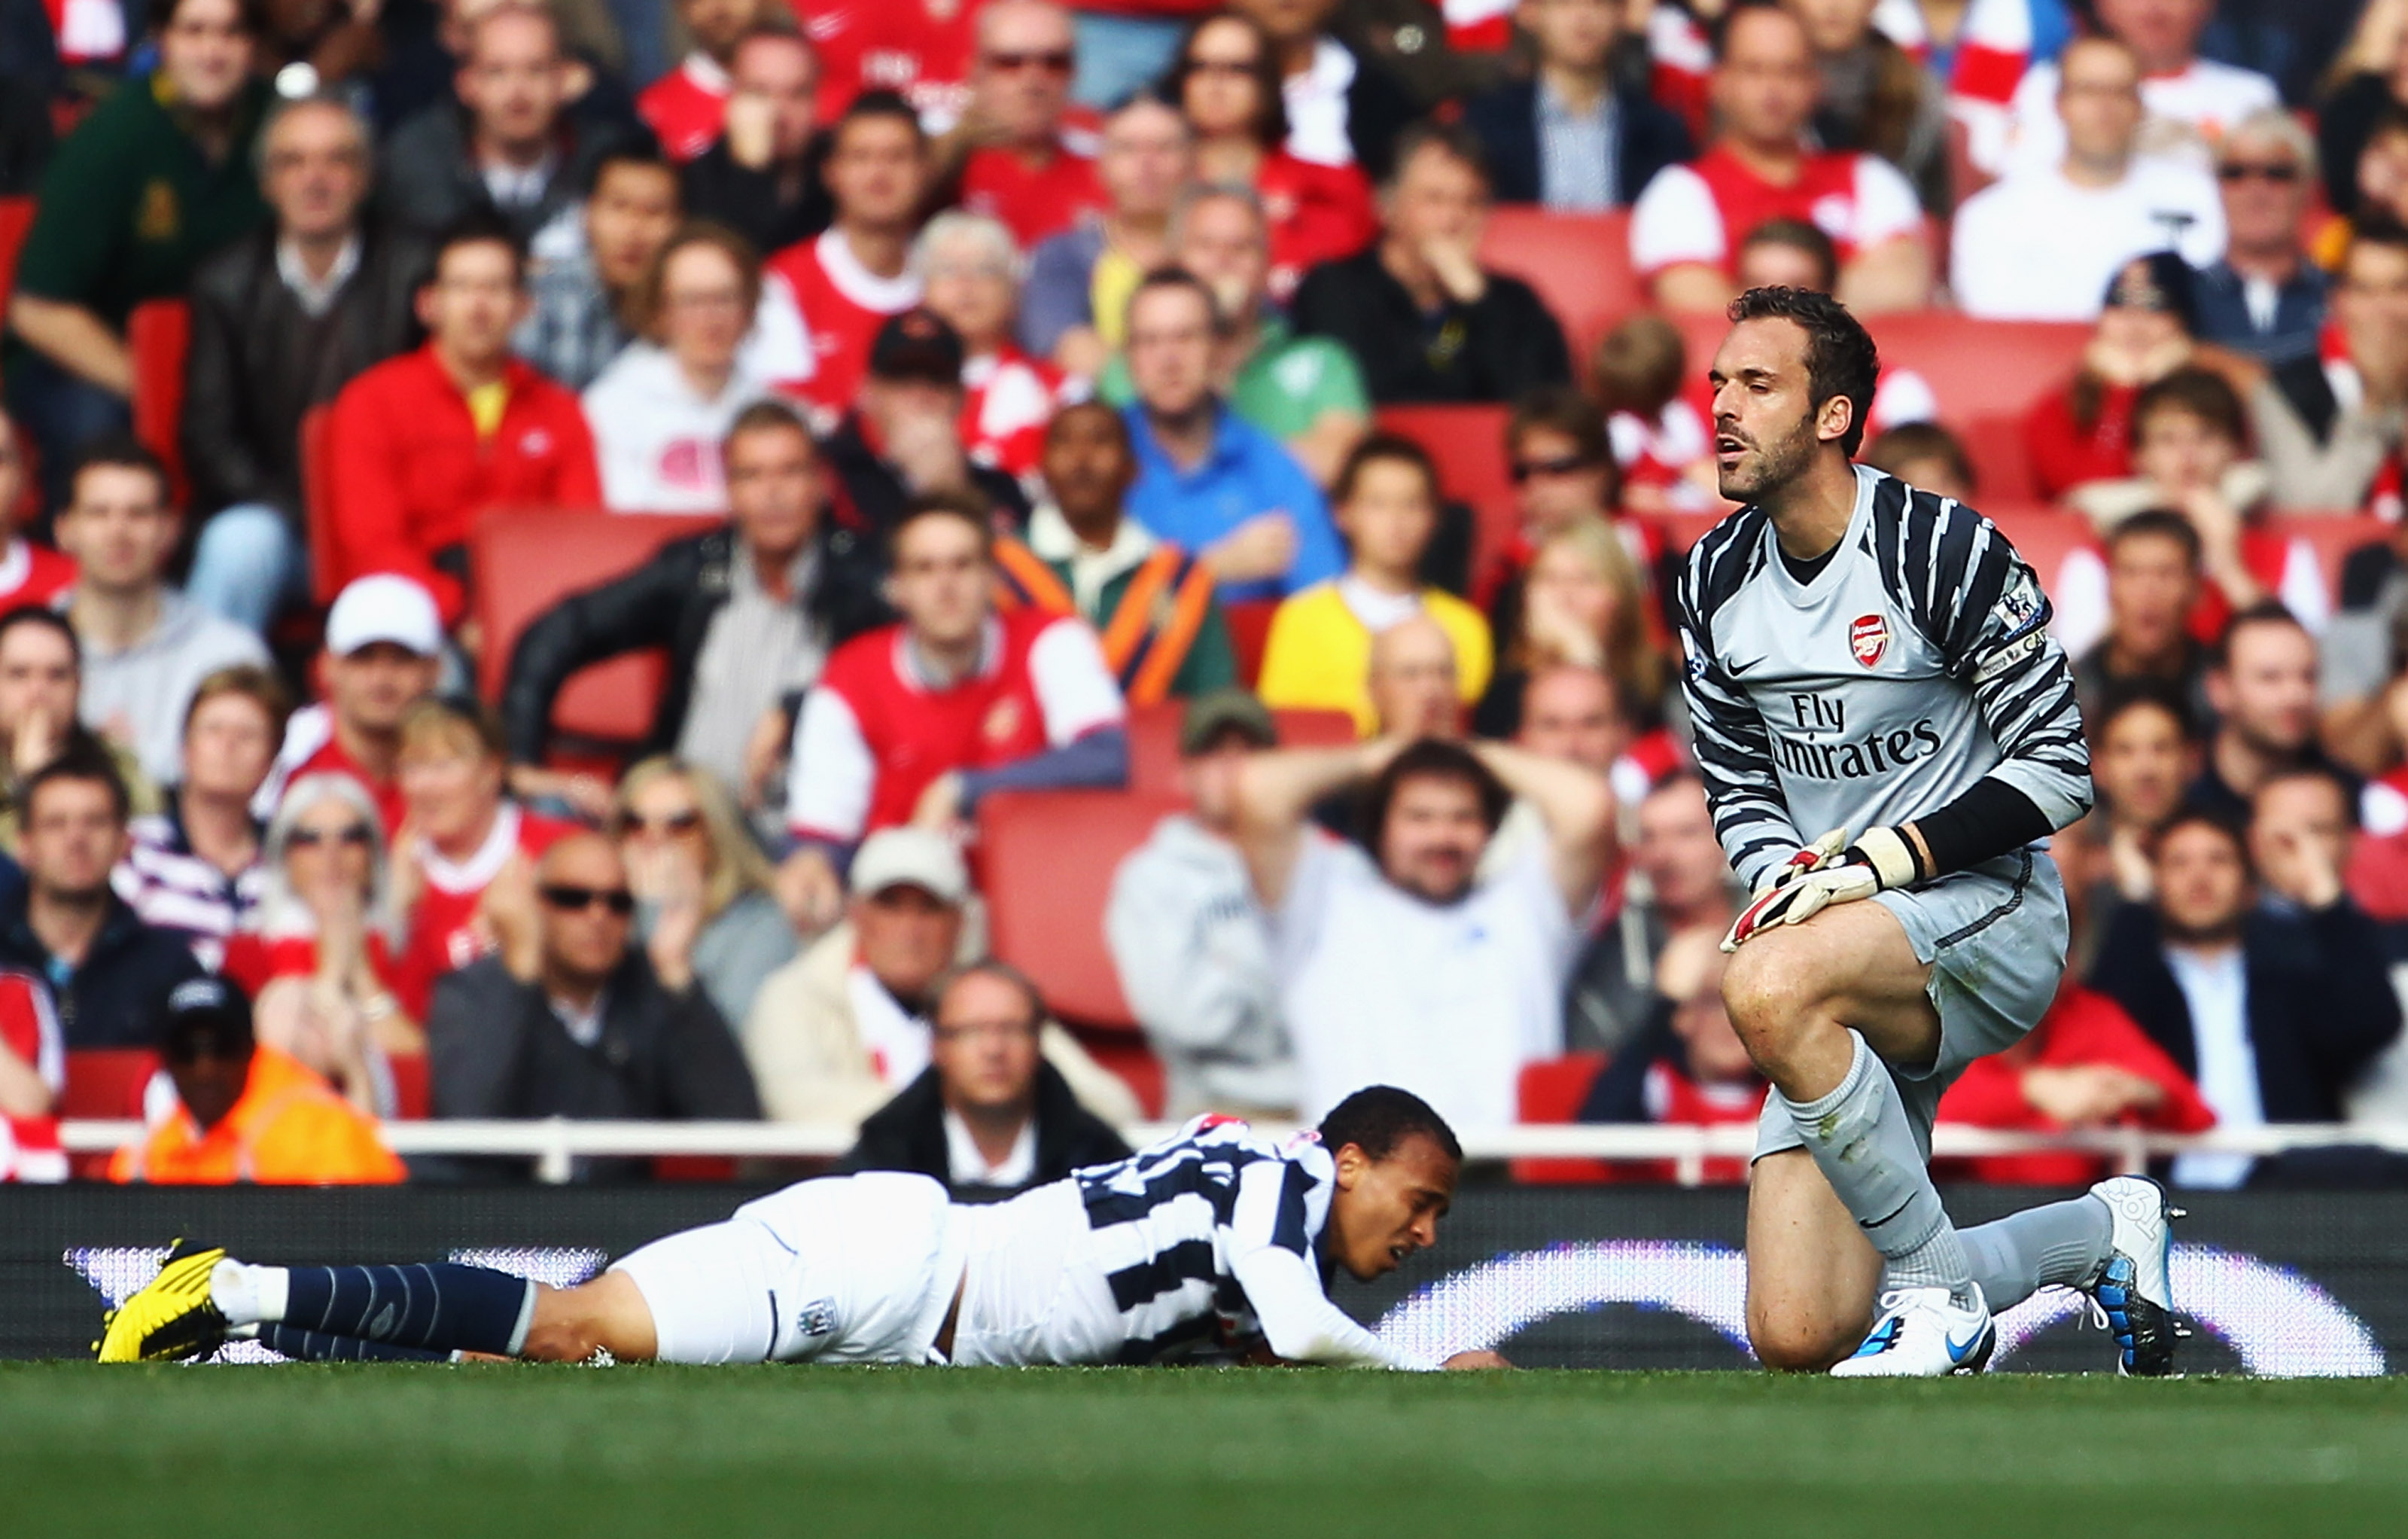 LONDON, ENGLAND - SEPTEMBER 25:  Manuel Almunia of Arsenal looks dejected as he fouls Peter Odemwingie of West Bromwich Albion for a penalty during the Barclays Premier League match between Arsenal and West Bromwich Albion at the Emirates Stadium on Septe